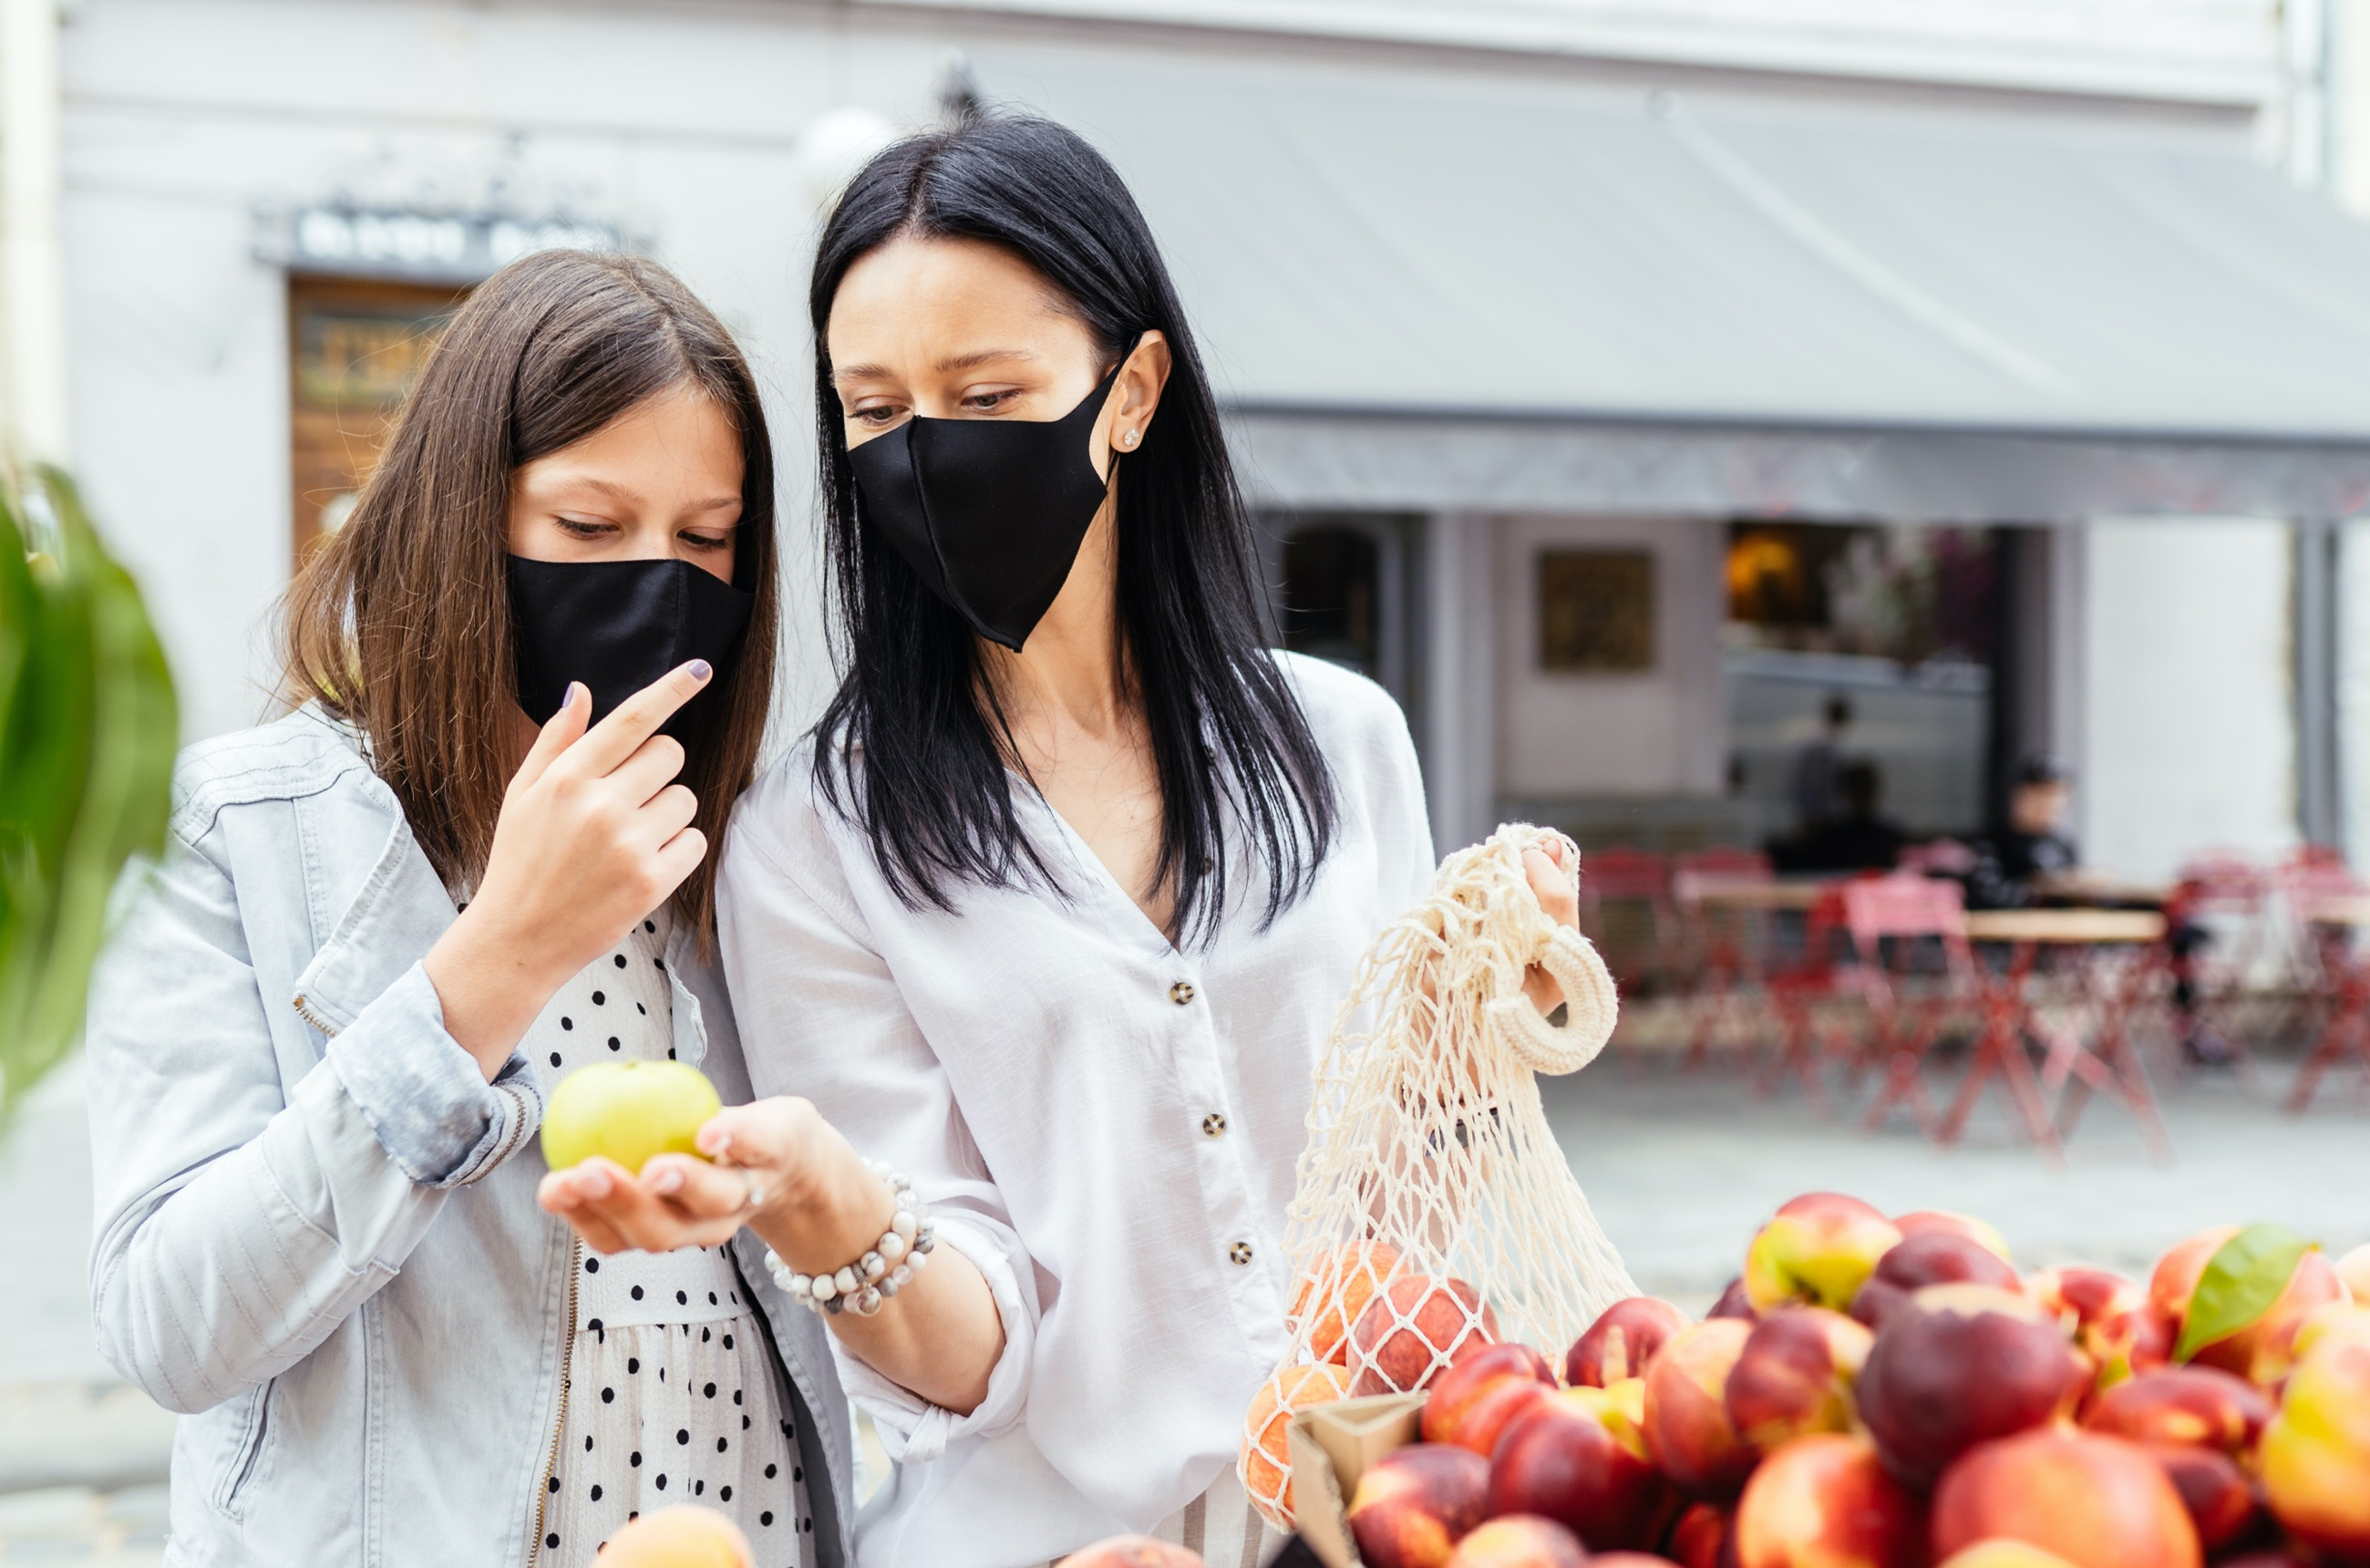 Two people wearing masks while shopping for fruit